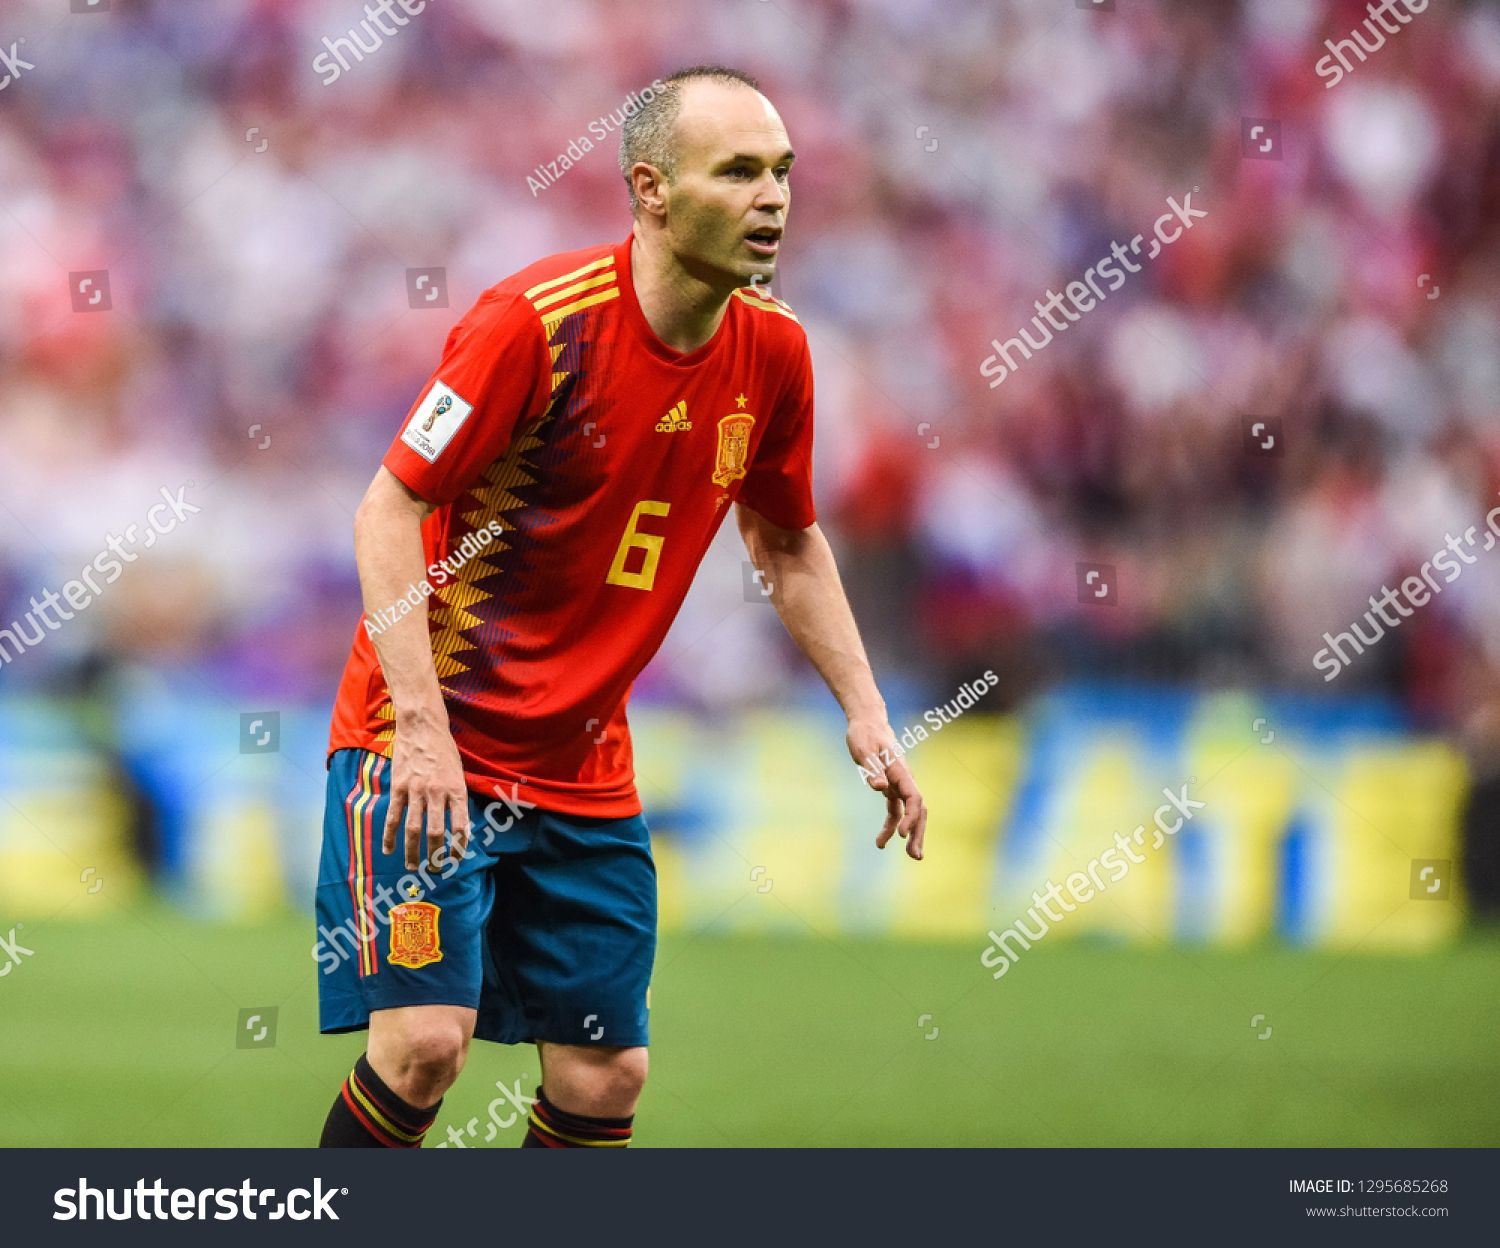 Moscow Russia July 1 2018 Spain National Football Team Midfielder Andres Iniesta During Fifa Spain National Football Team National Football Teams Iniesta